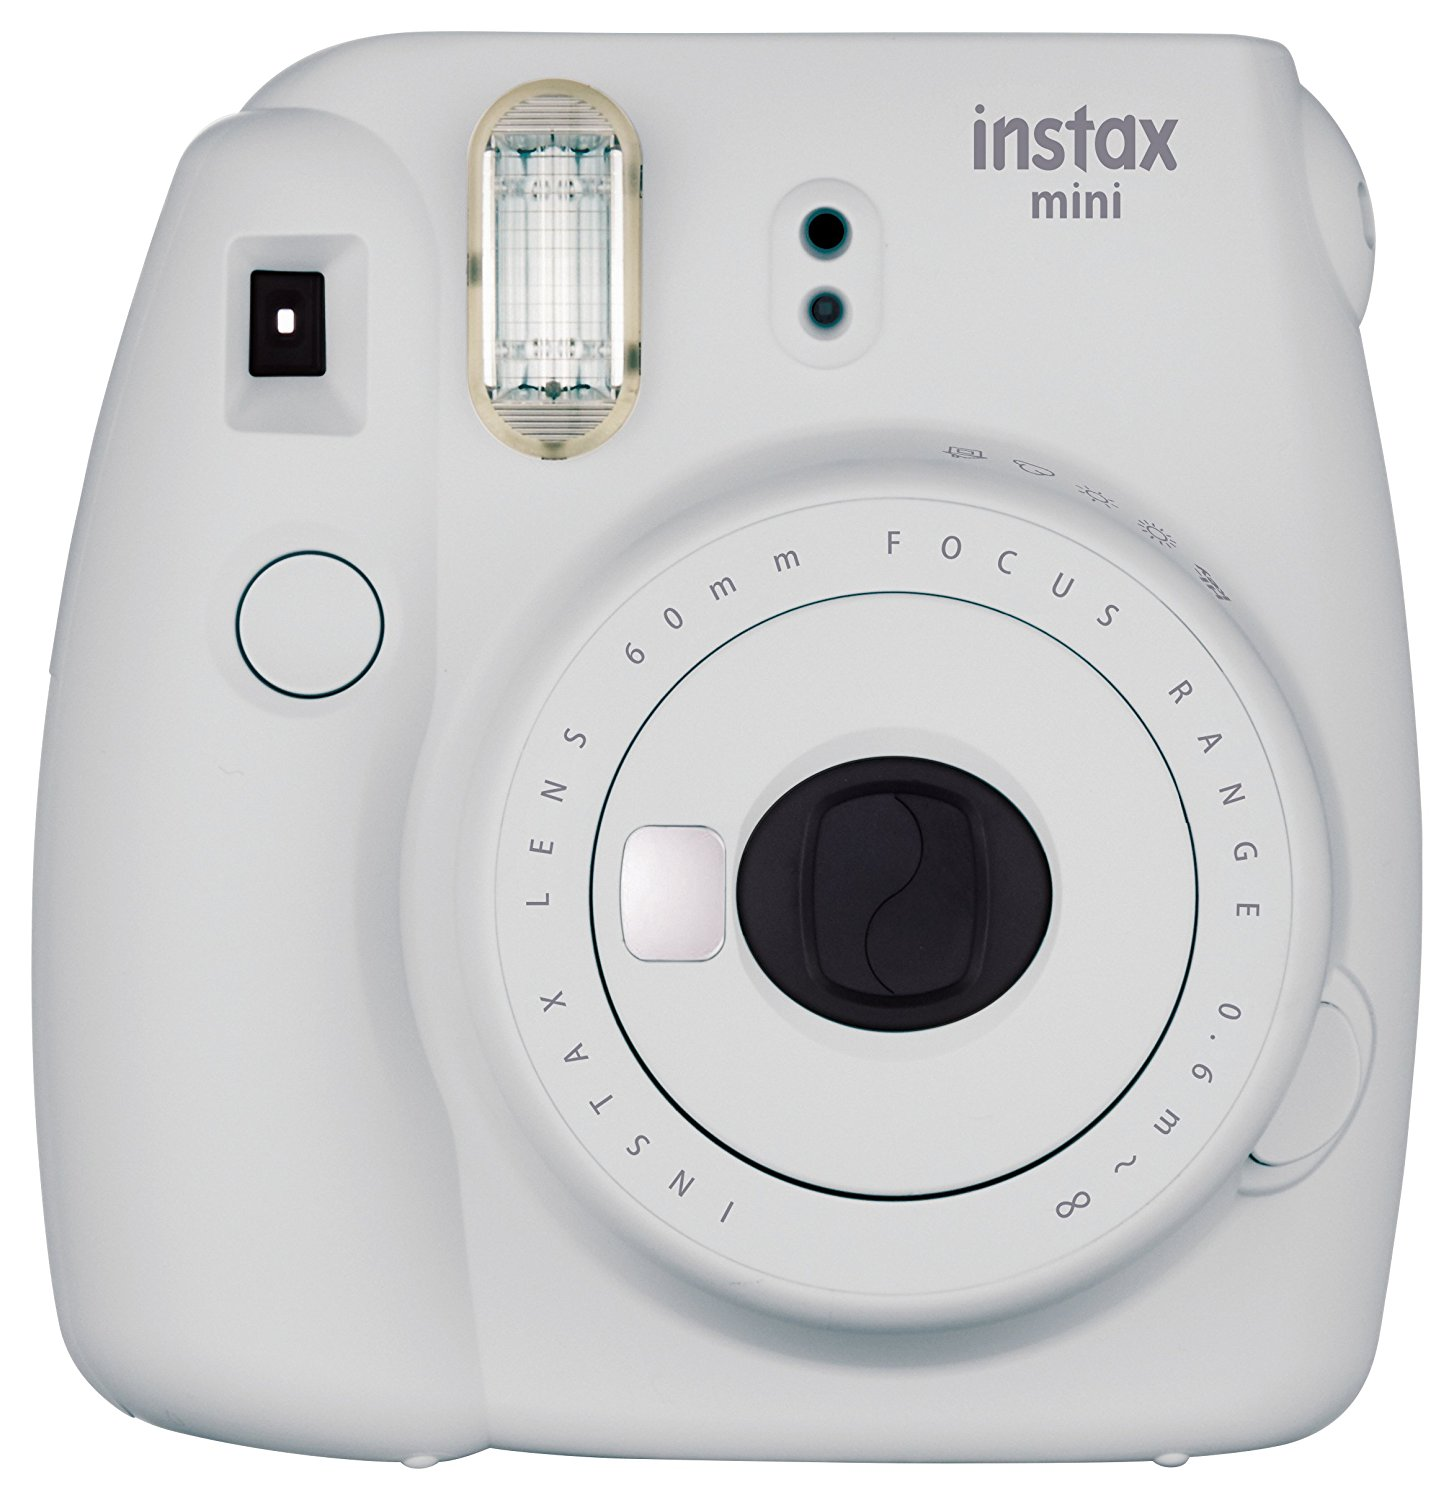 Fujifilm instamax camera is a great last-minute holiday gift idea from Amazon